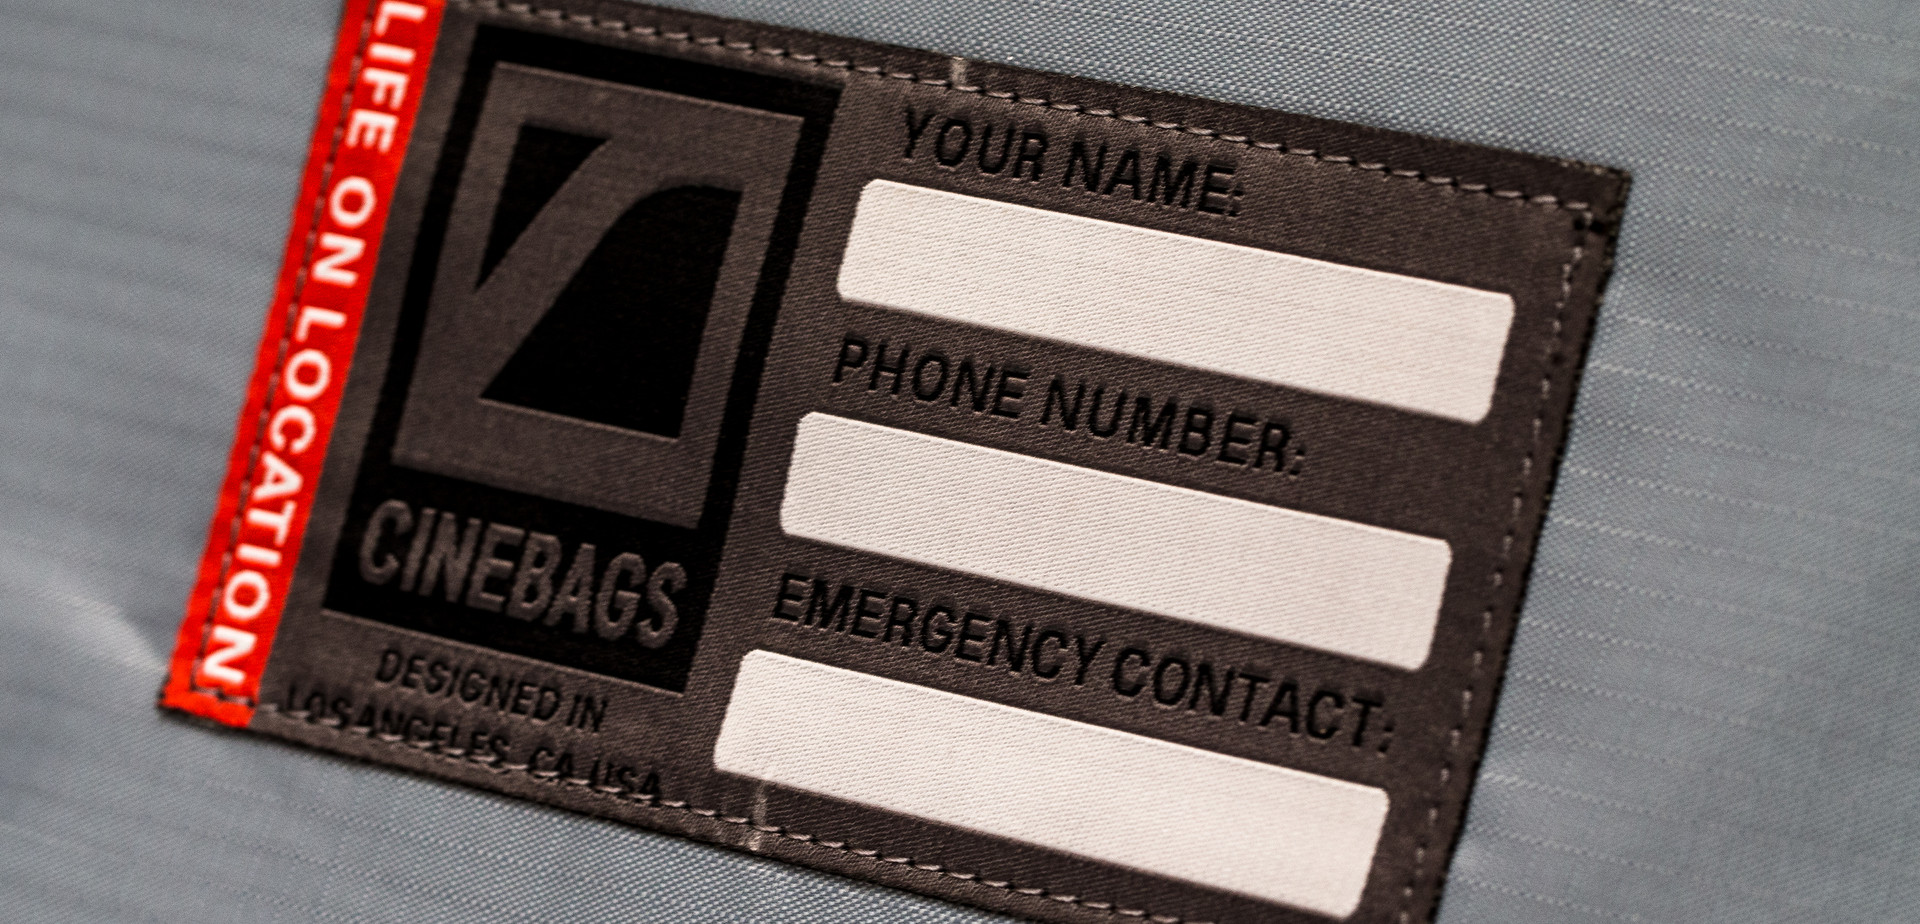 CineBags CB26 GoPro Bunker emergency contact info